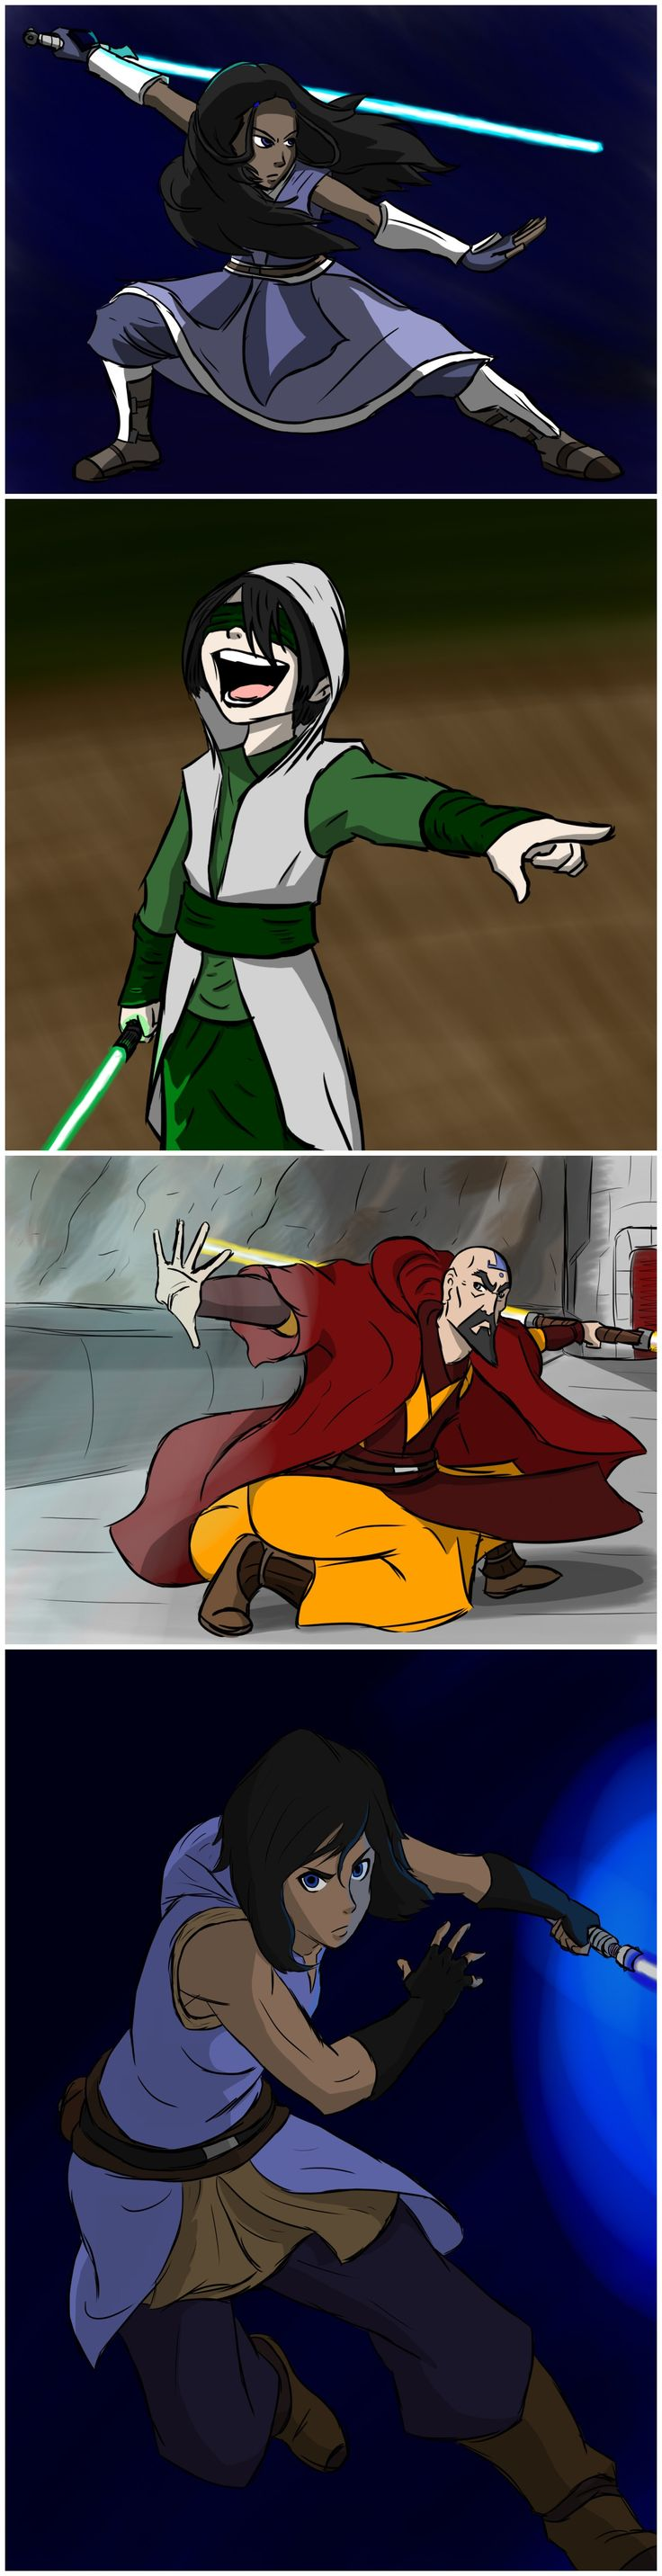 Master Katara by JediqueerArt. Master Toph Beifong by JediqueerArt. Master Tenzin by JediqueerArt. Korra knight of Republic City by JediqueerArt. Star Wars x Avatar series.